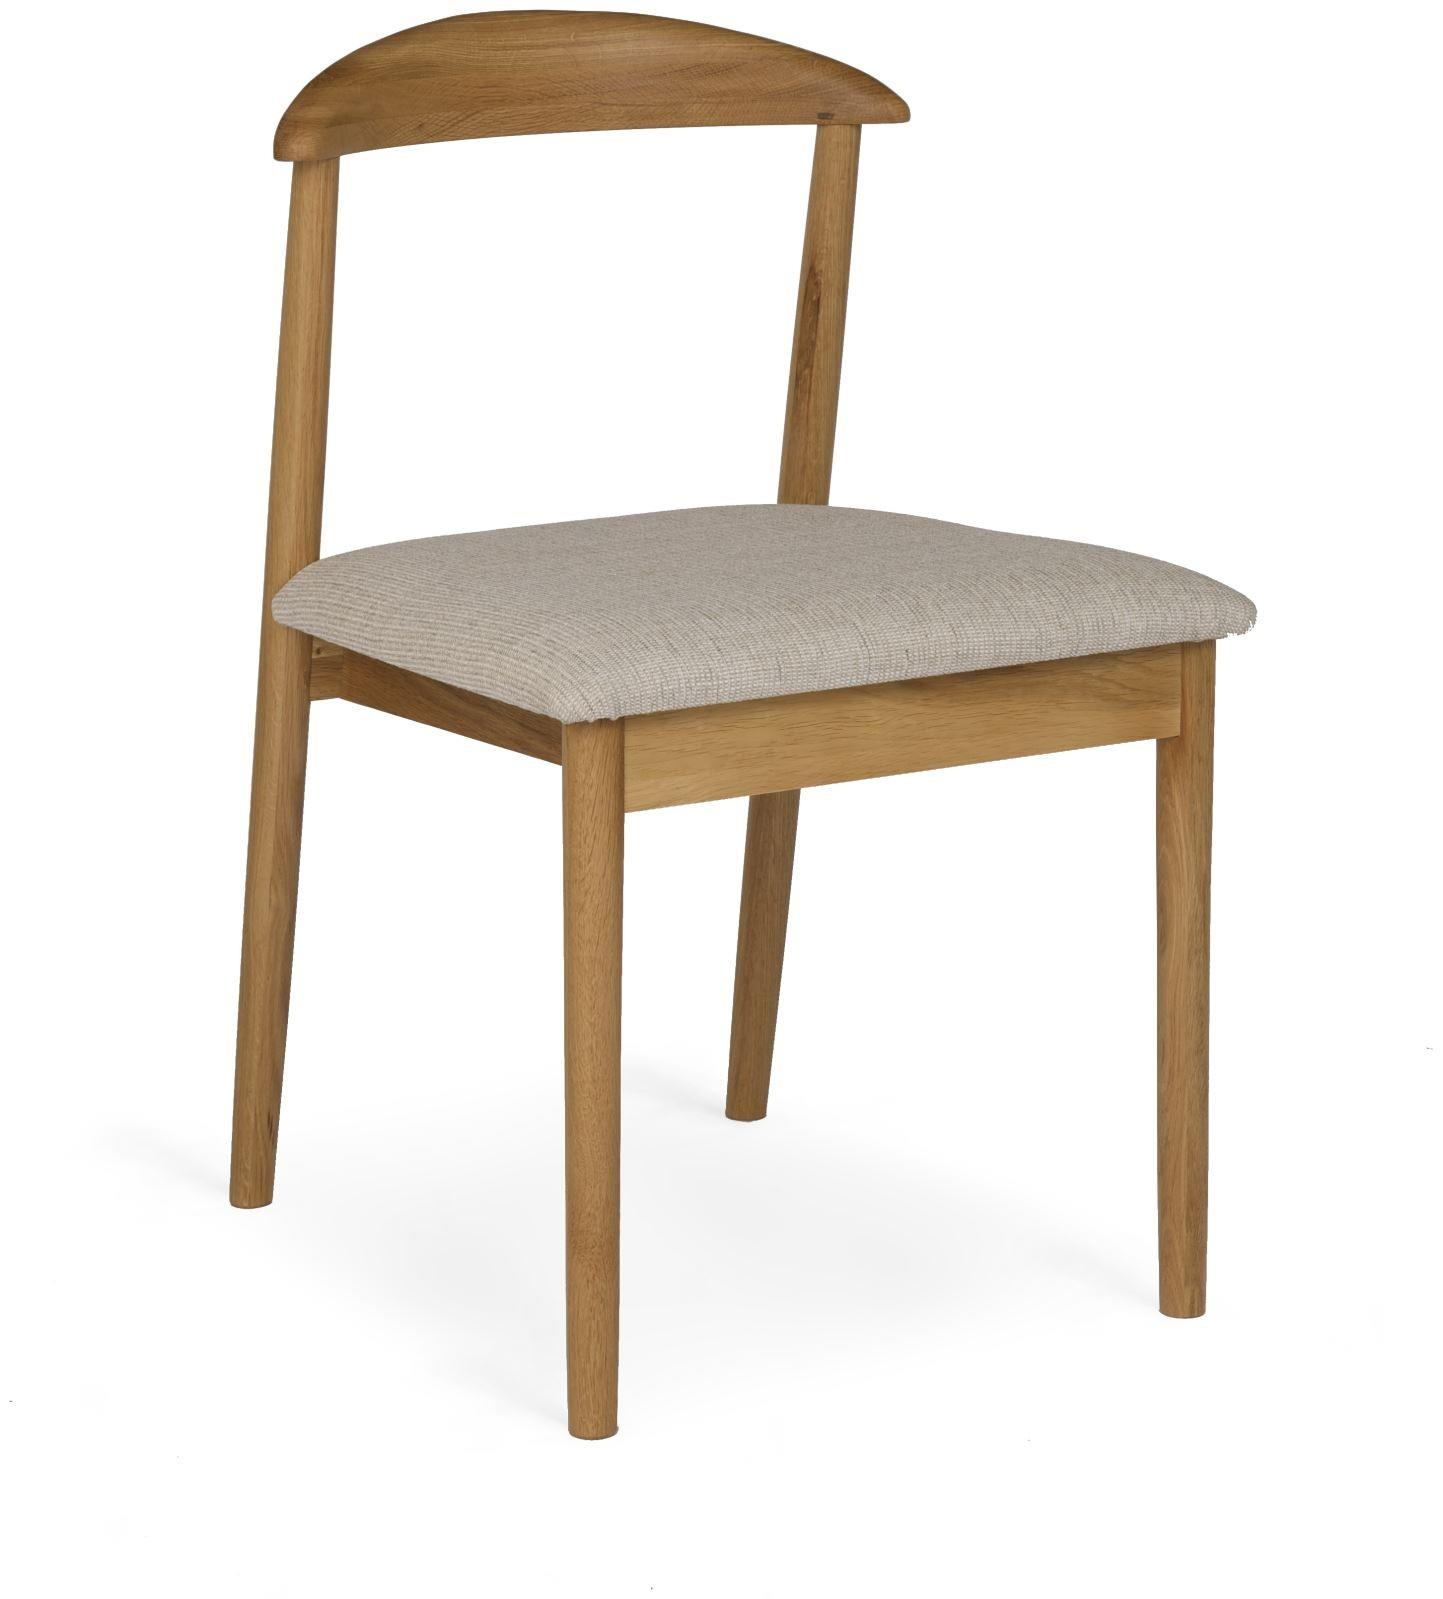 MALMO - Oak Dining Chair - No arms